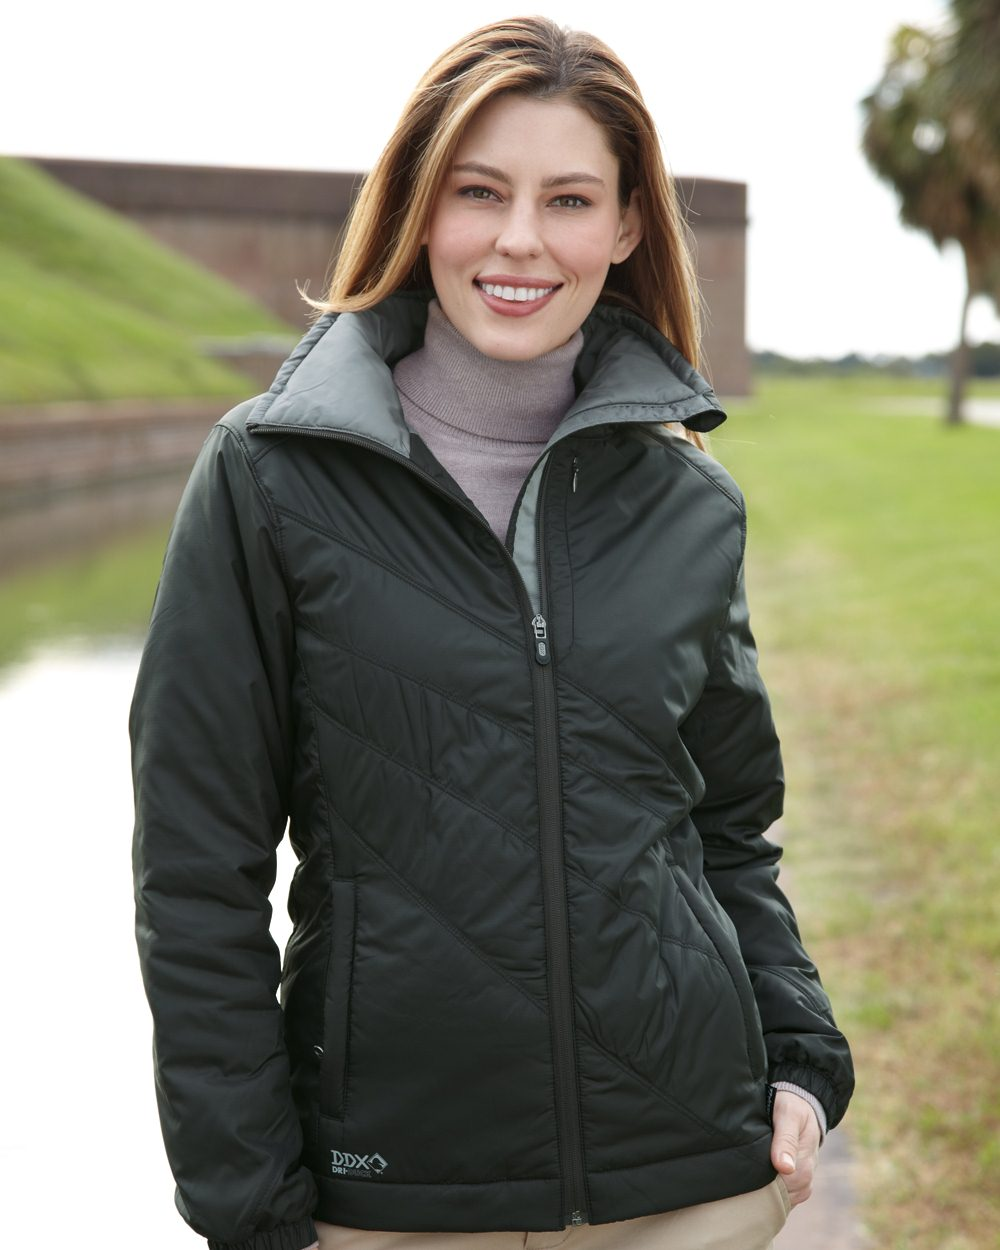 DRI DUCK 9413 - Solstice Ladies' Thinsulate Lined Puffer ...